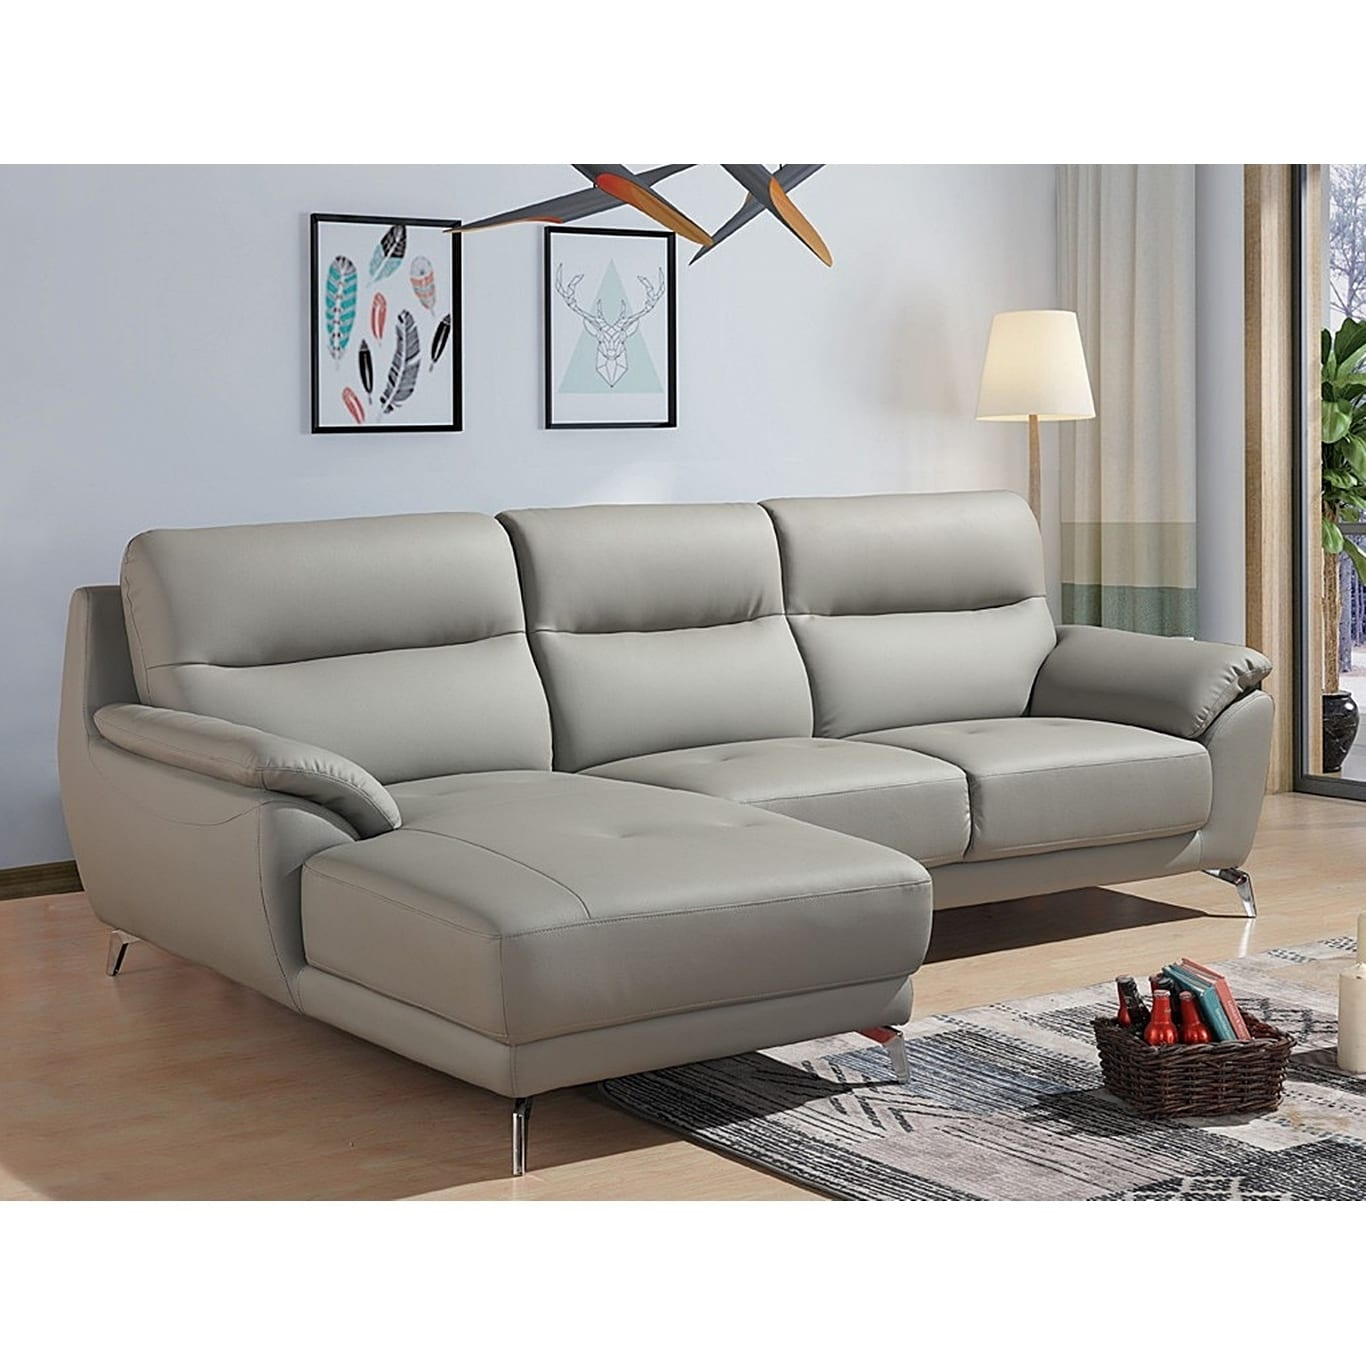 Cadmen Modern Grey Leather L-shaped Sofa with Left Facing Chaise